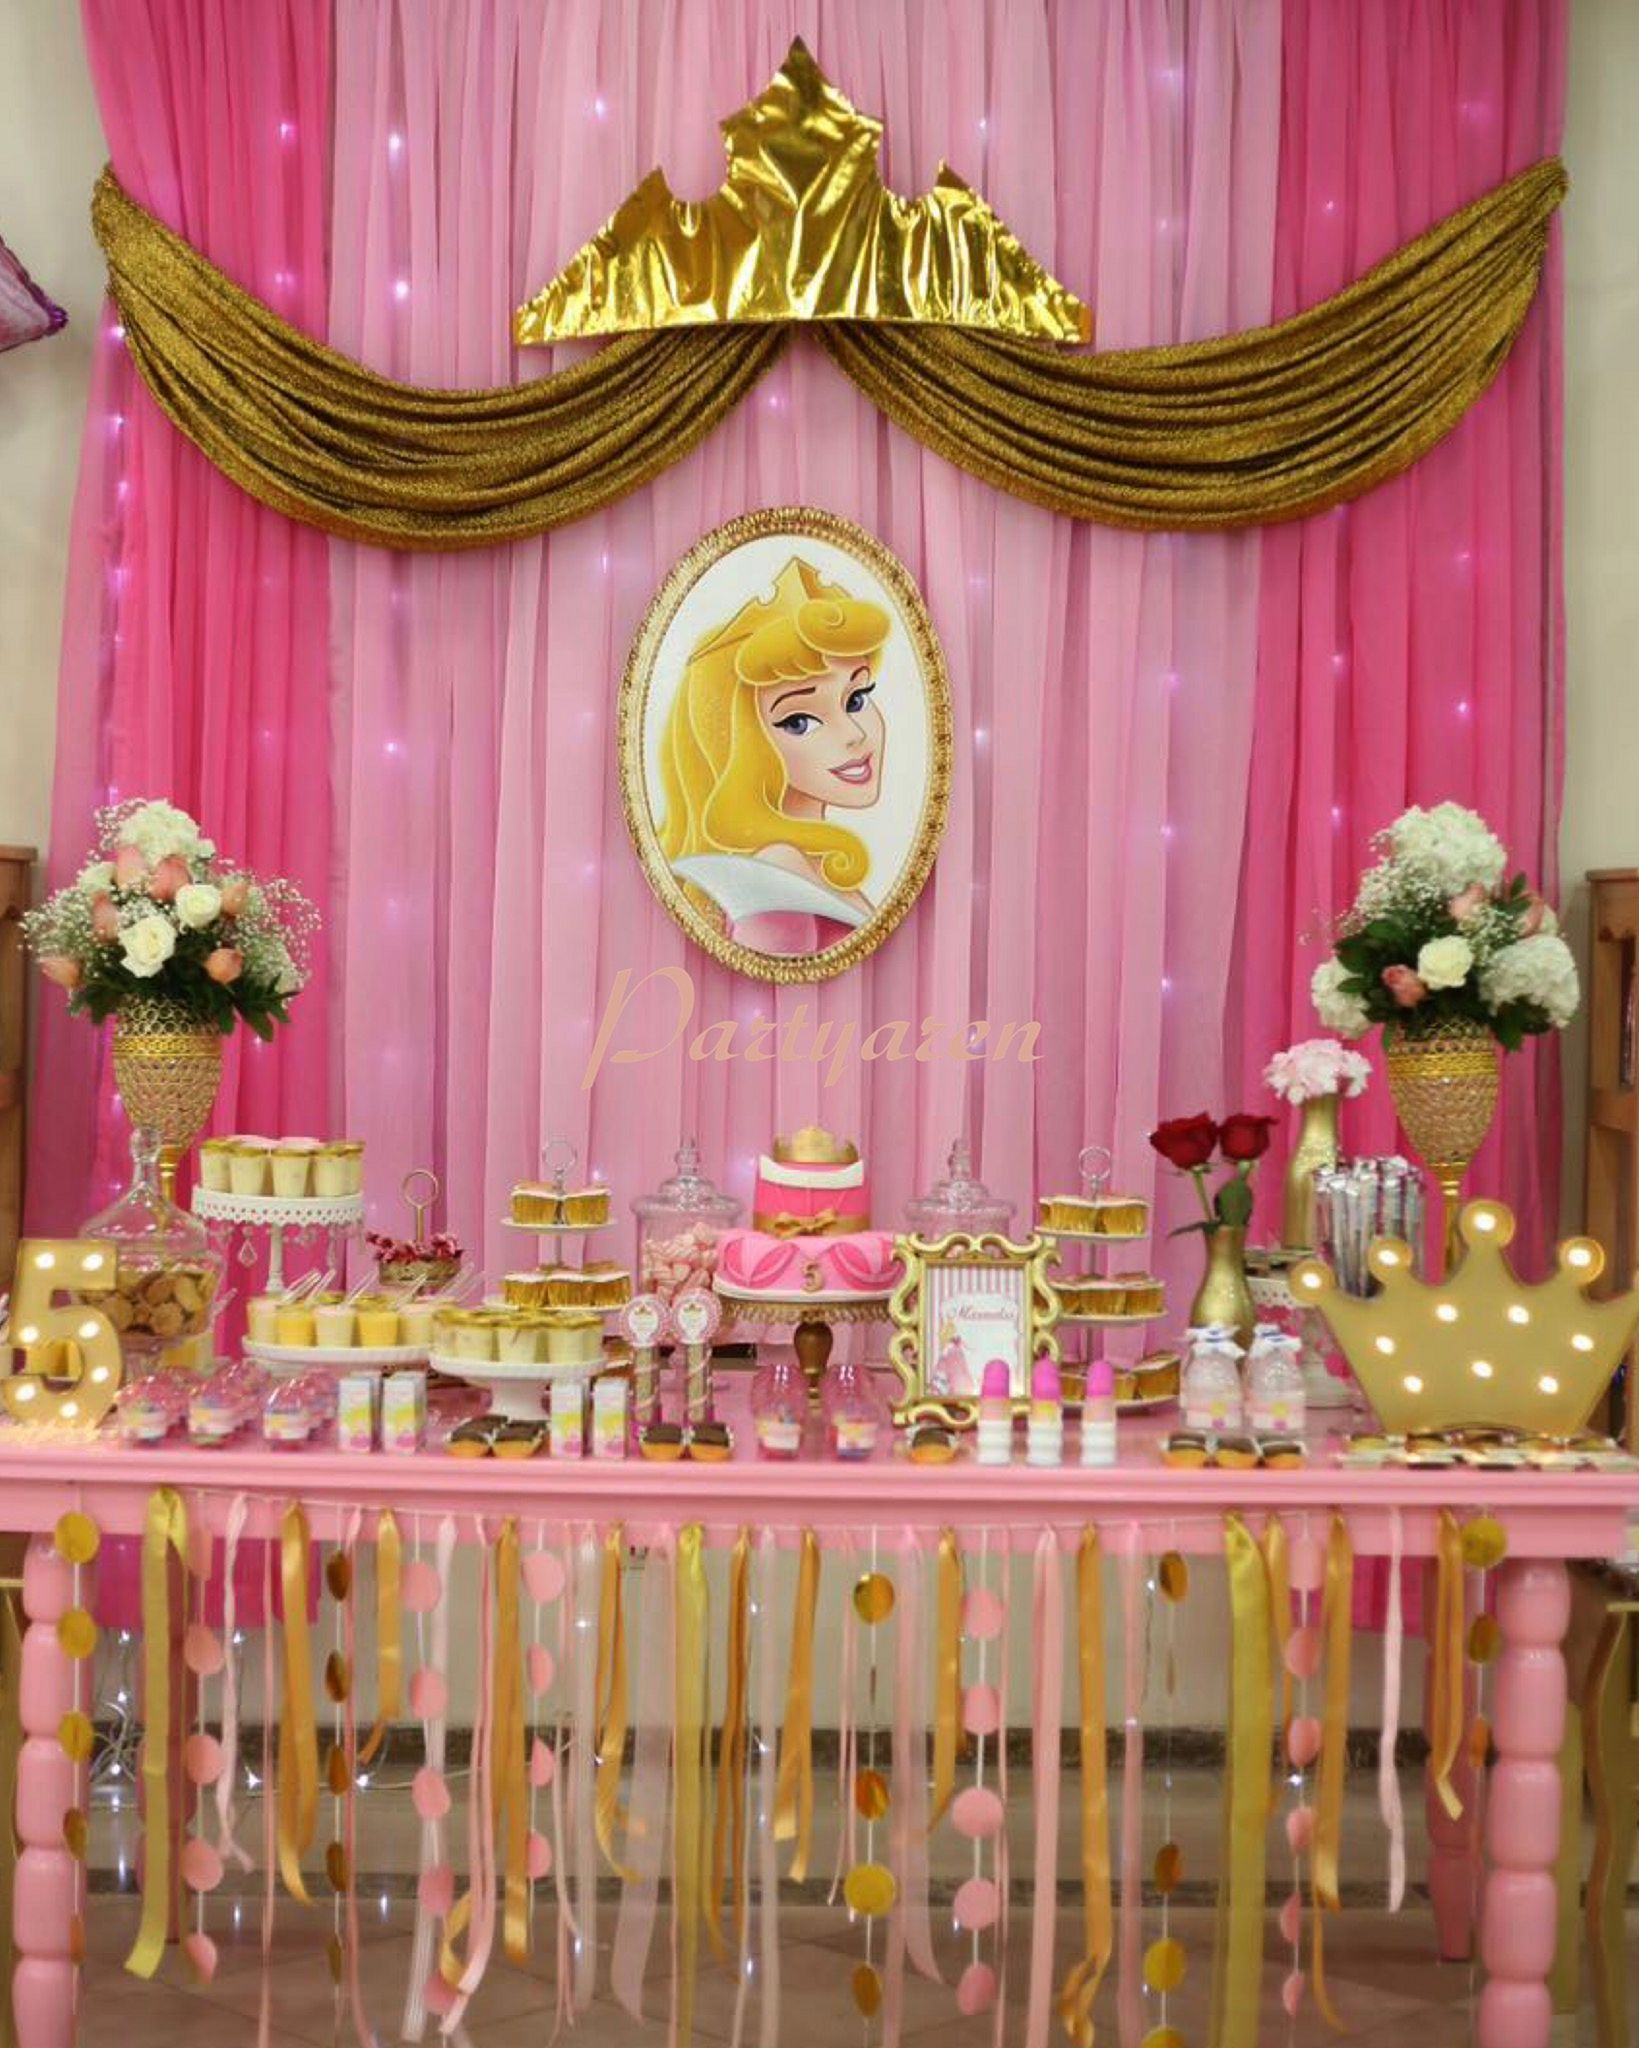 Flawless 42 Beautiful Princess Curtains Design Ideas For Happy Little Girl Https Decore Princess Party Decorations Princess Aurora Party Princess Theme Party